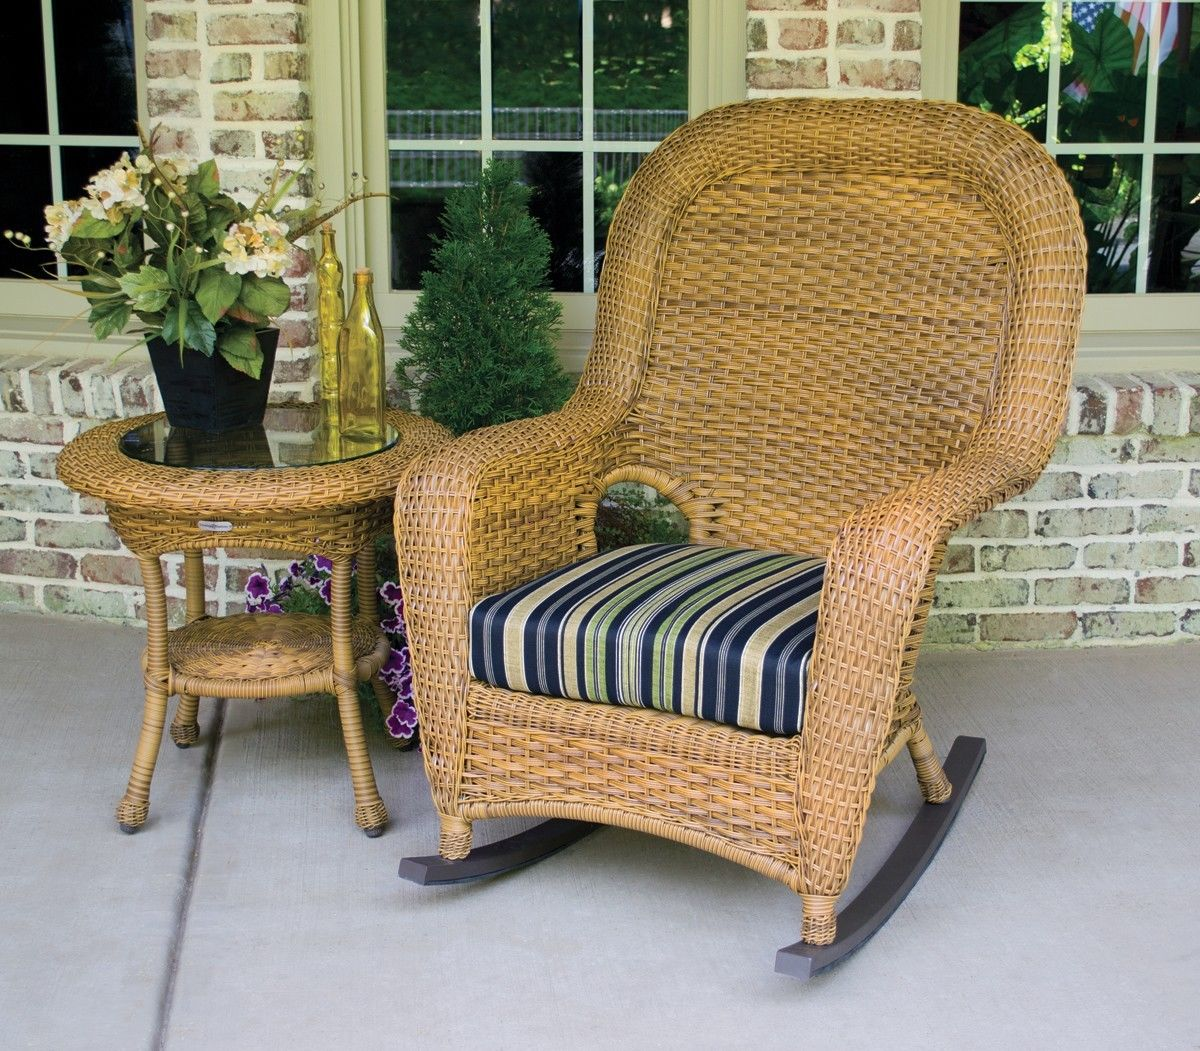 #72 - Outdoor Patio Garden Furniture Mojave Resin Wicker Rocker and Table Bundle in Vera Cruz